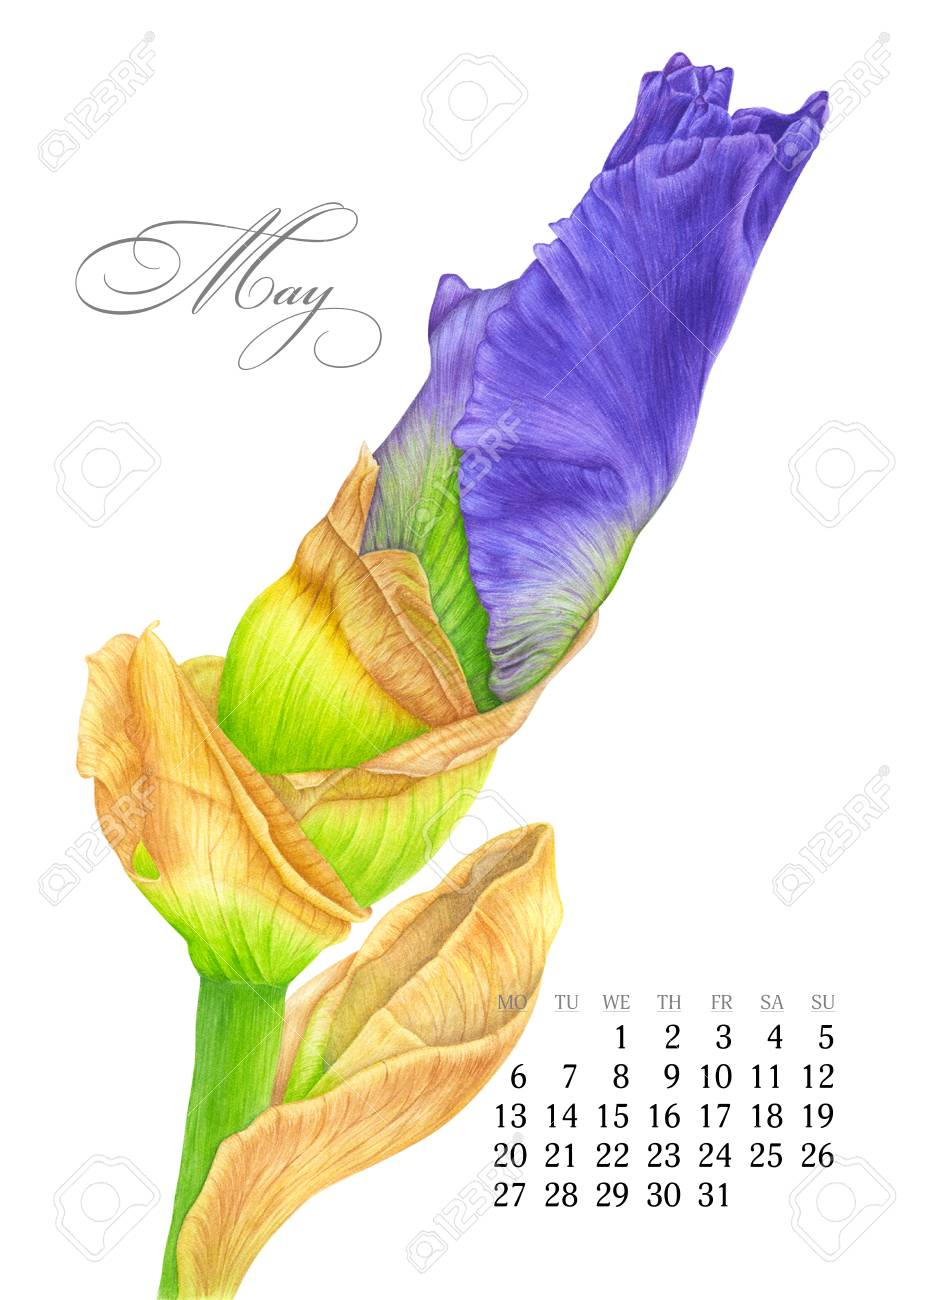 photograph relating to Watercolor Printable named Sophisticated printable calendar 2019. May possibly. Watercolor iris. Botanical..